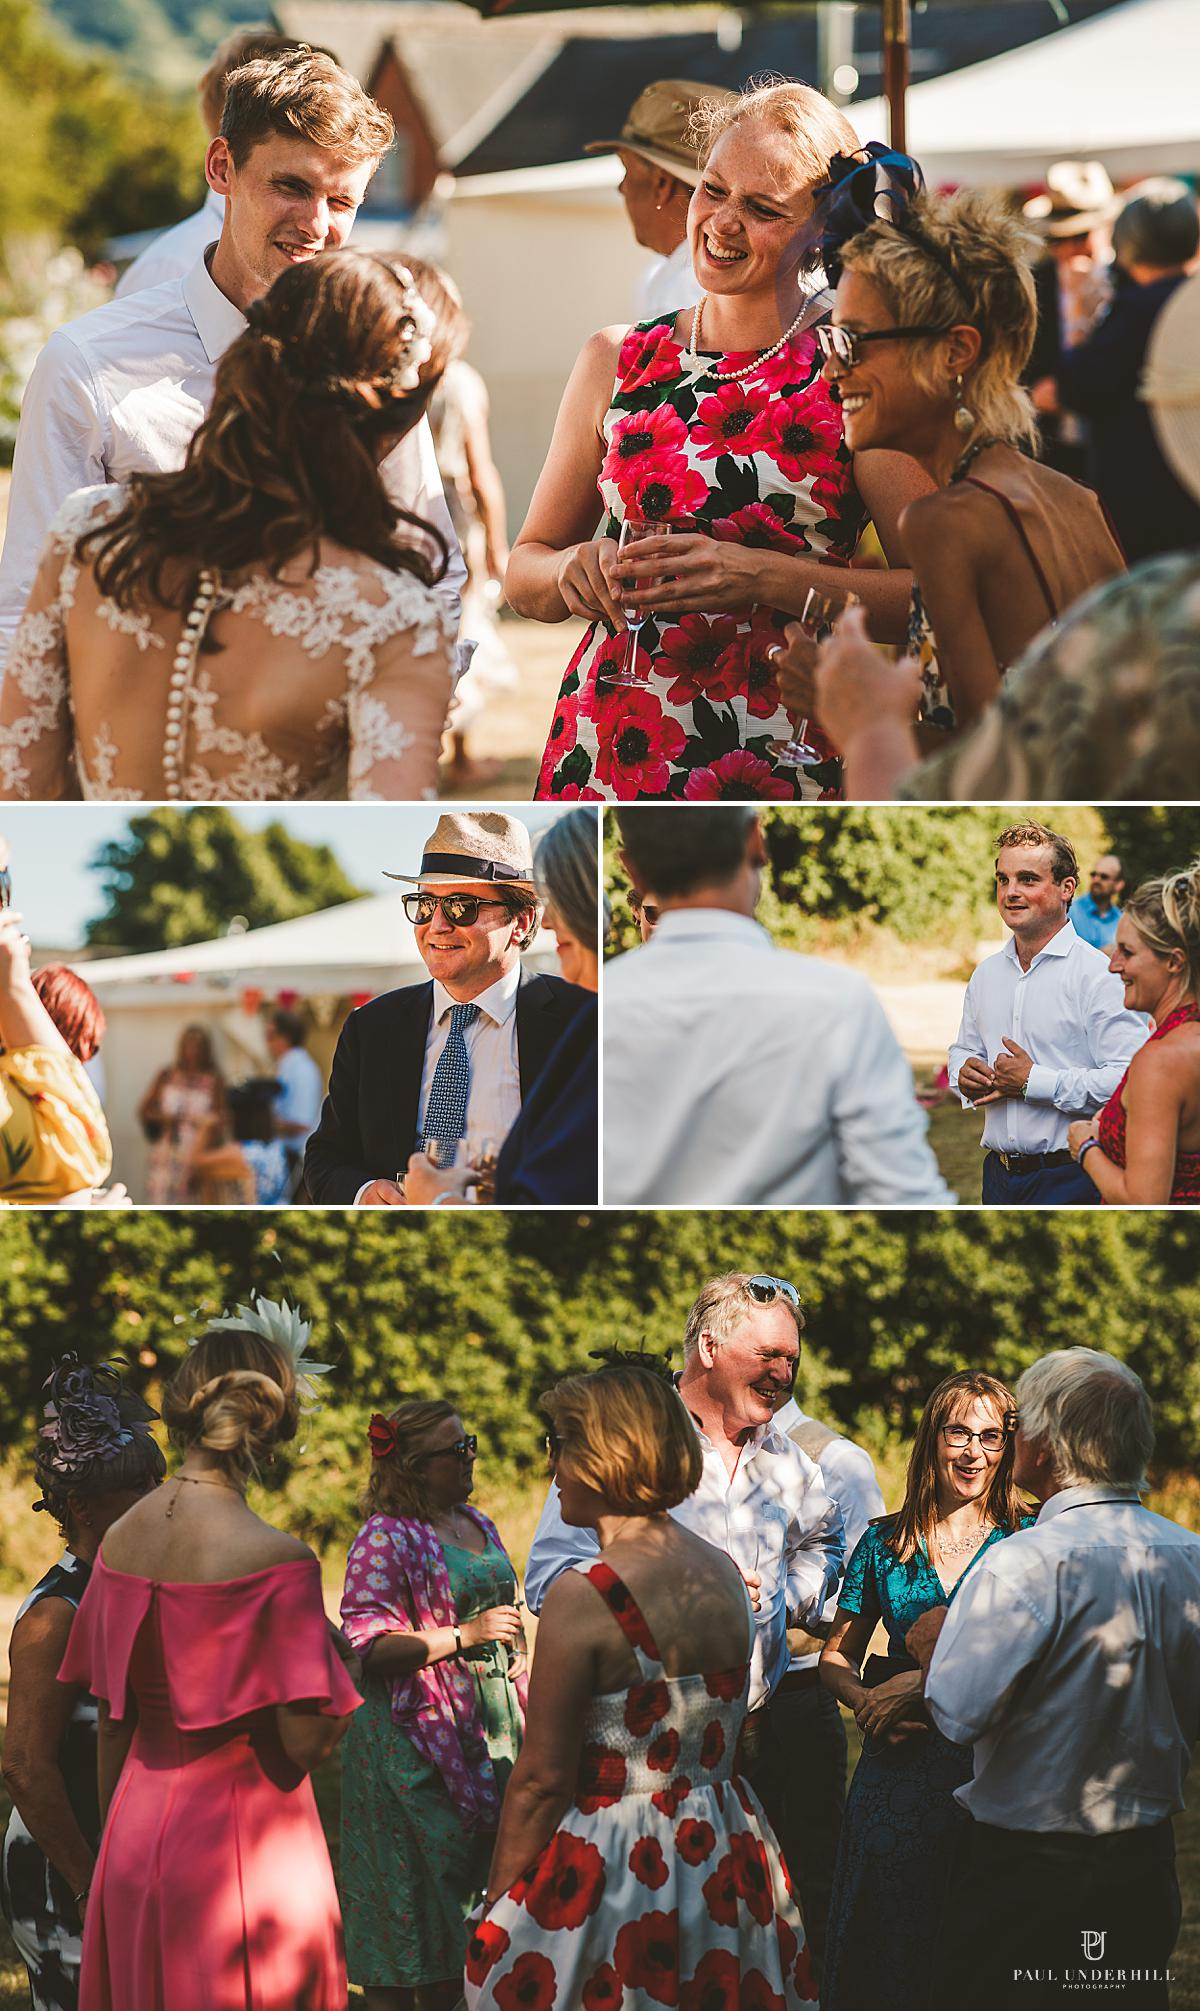 Outdoor summer Dorset wedding photography